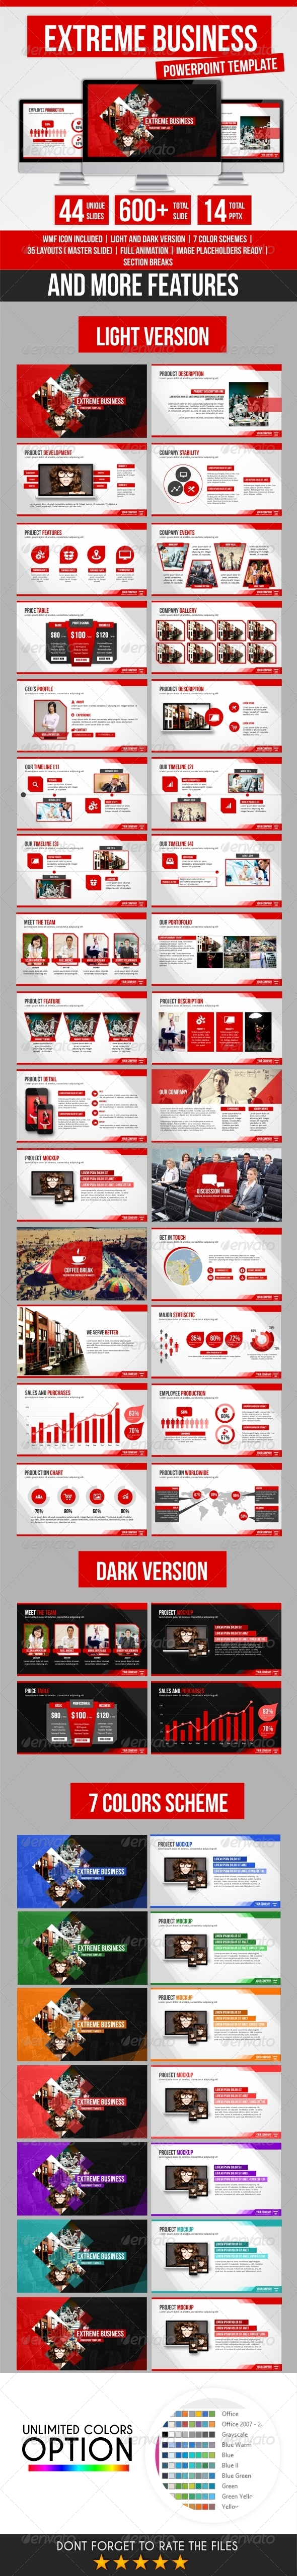 GraphicRiver Extreme Bussiness PowerPoint Template 8661344